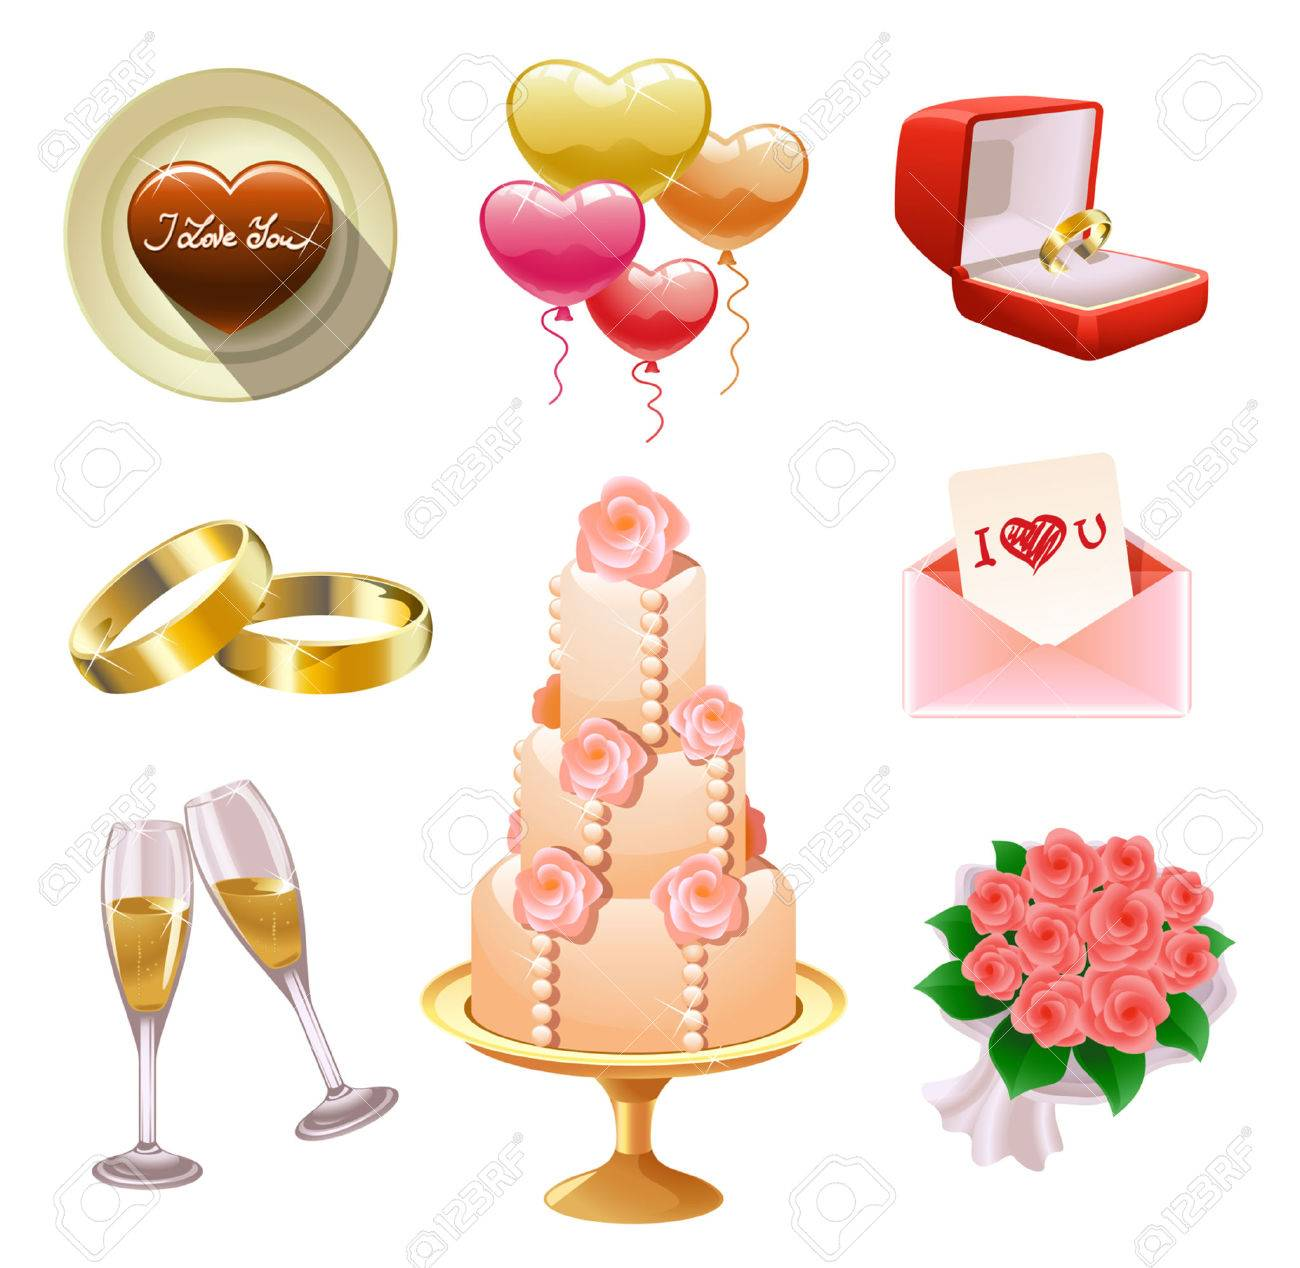 Collection of wedding- and Valentine's-related objects Stock Vector - 8639631